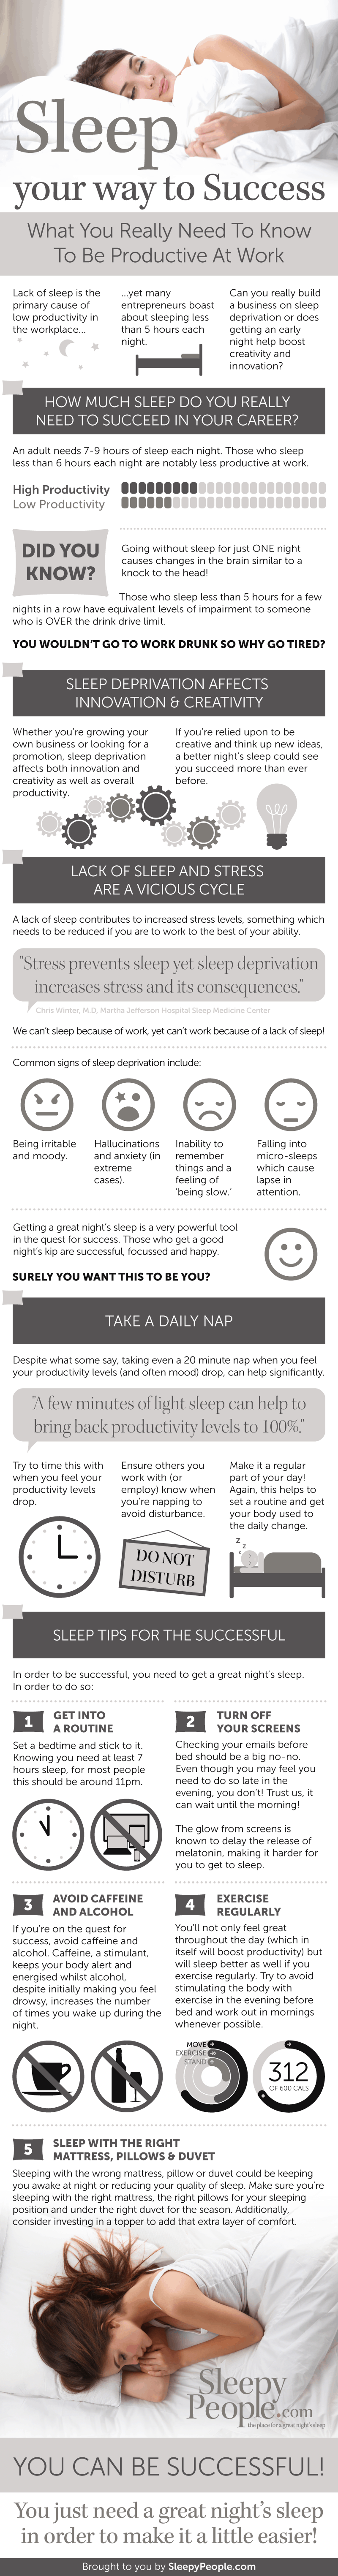 Sleep-Your-Way-To-Success